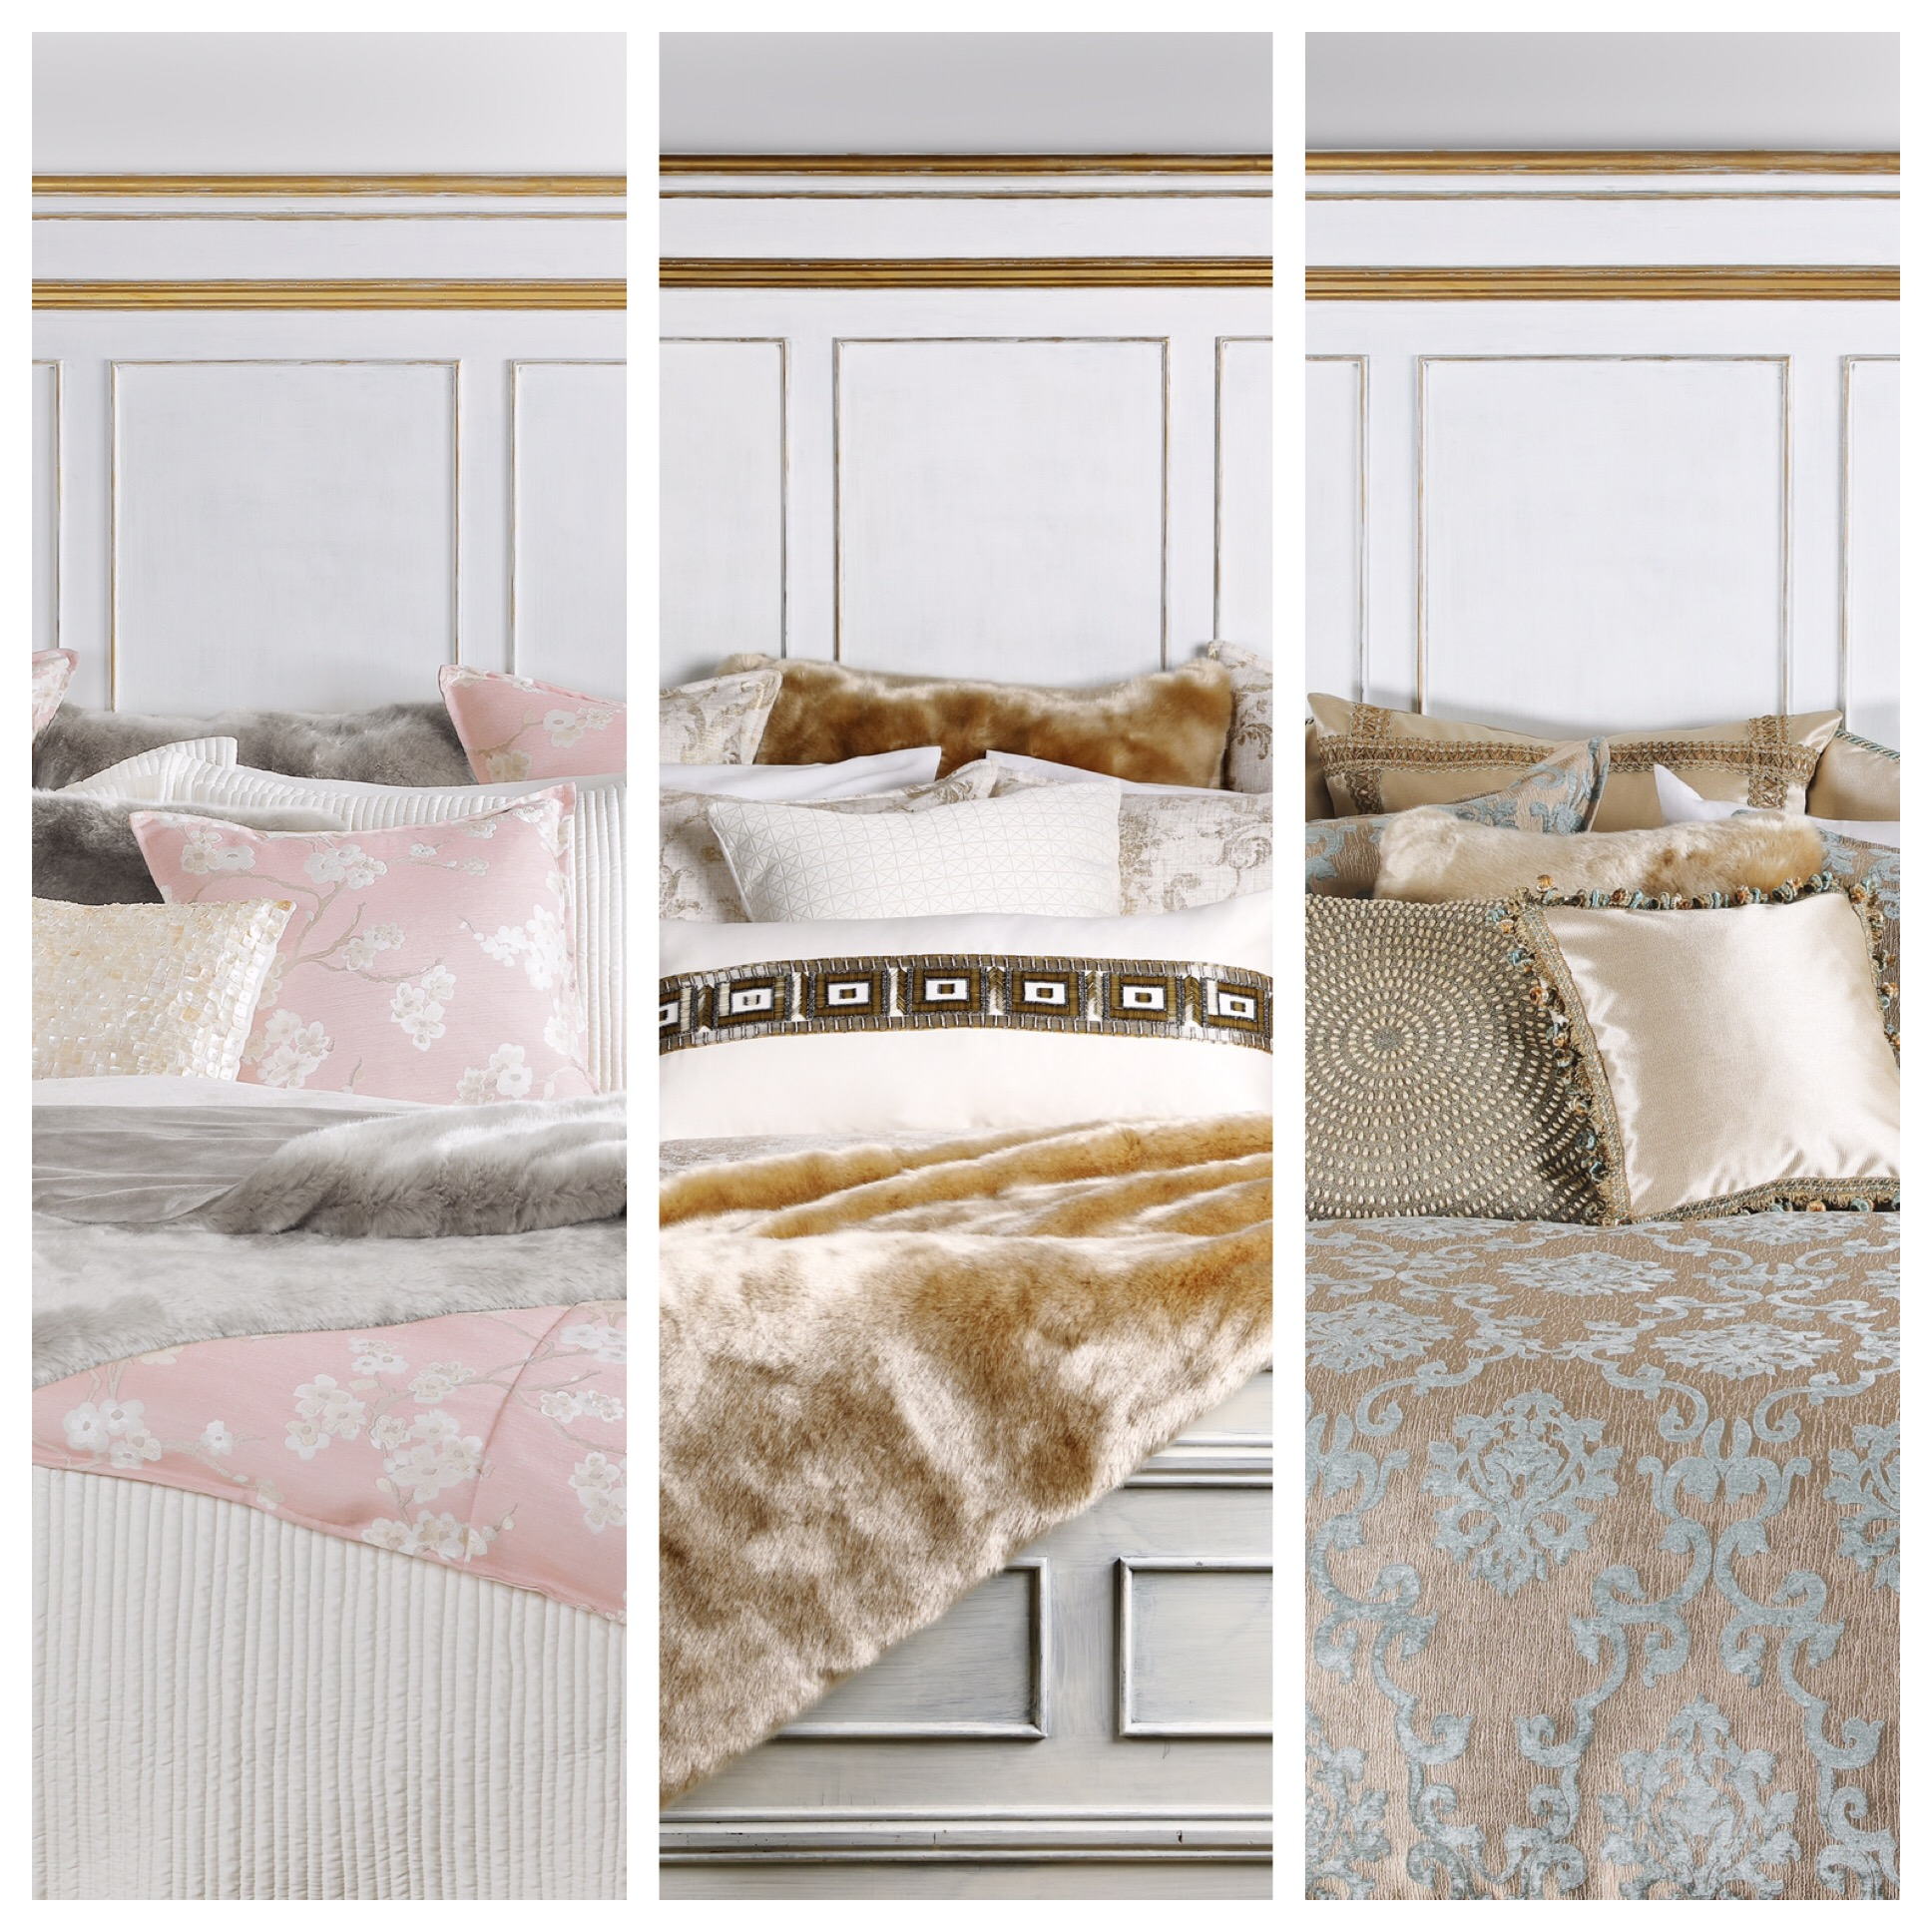 Isabella Collection by Kathy Fielder Debuts Three New Bedding Collections